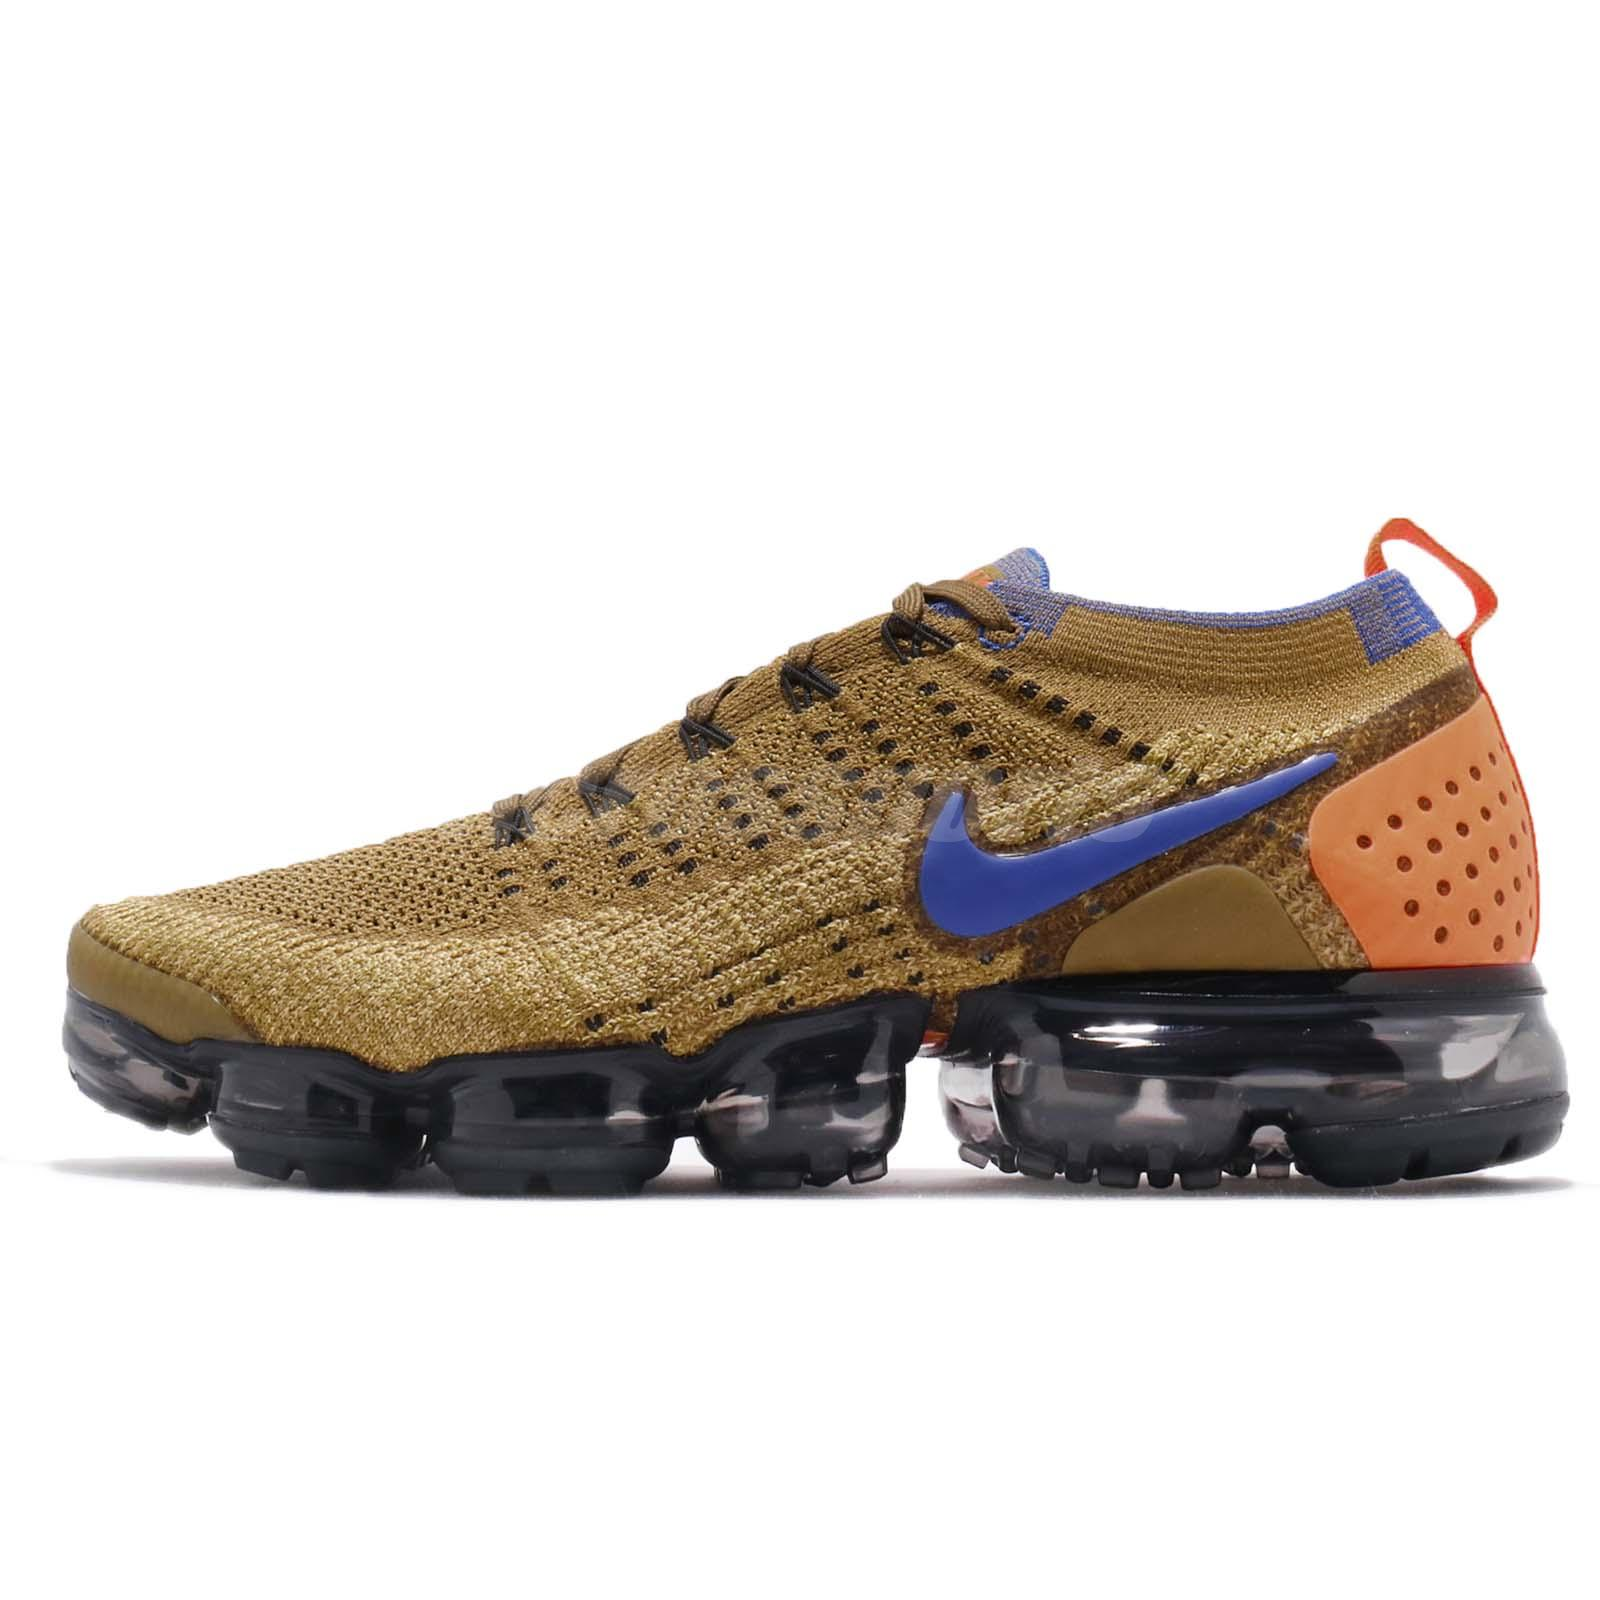 best website c05ff 6ec02 Nike Air Vapormax Flyknit 2 II Mowabb Golden Beige Men Running Shoes  942842-203